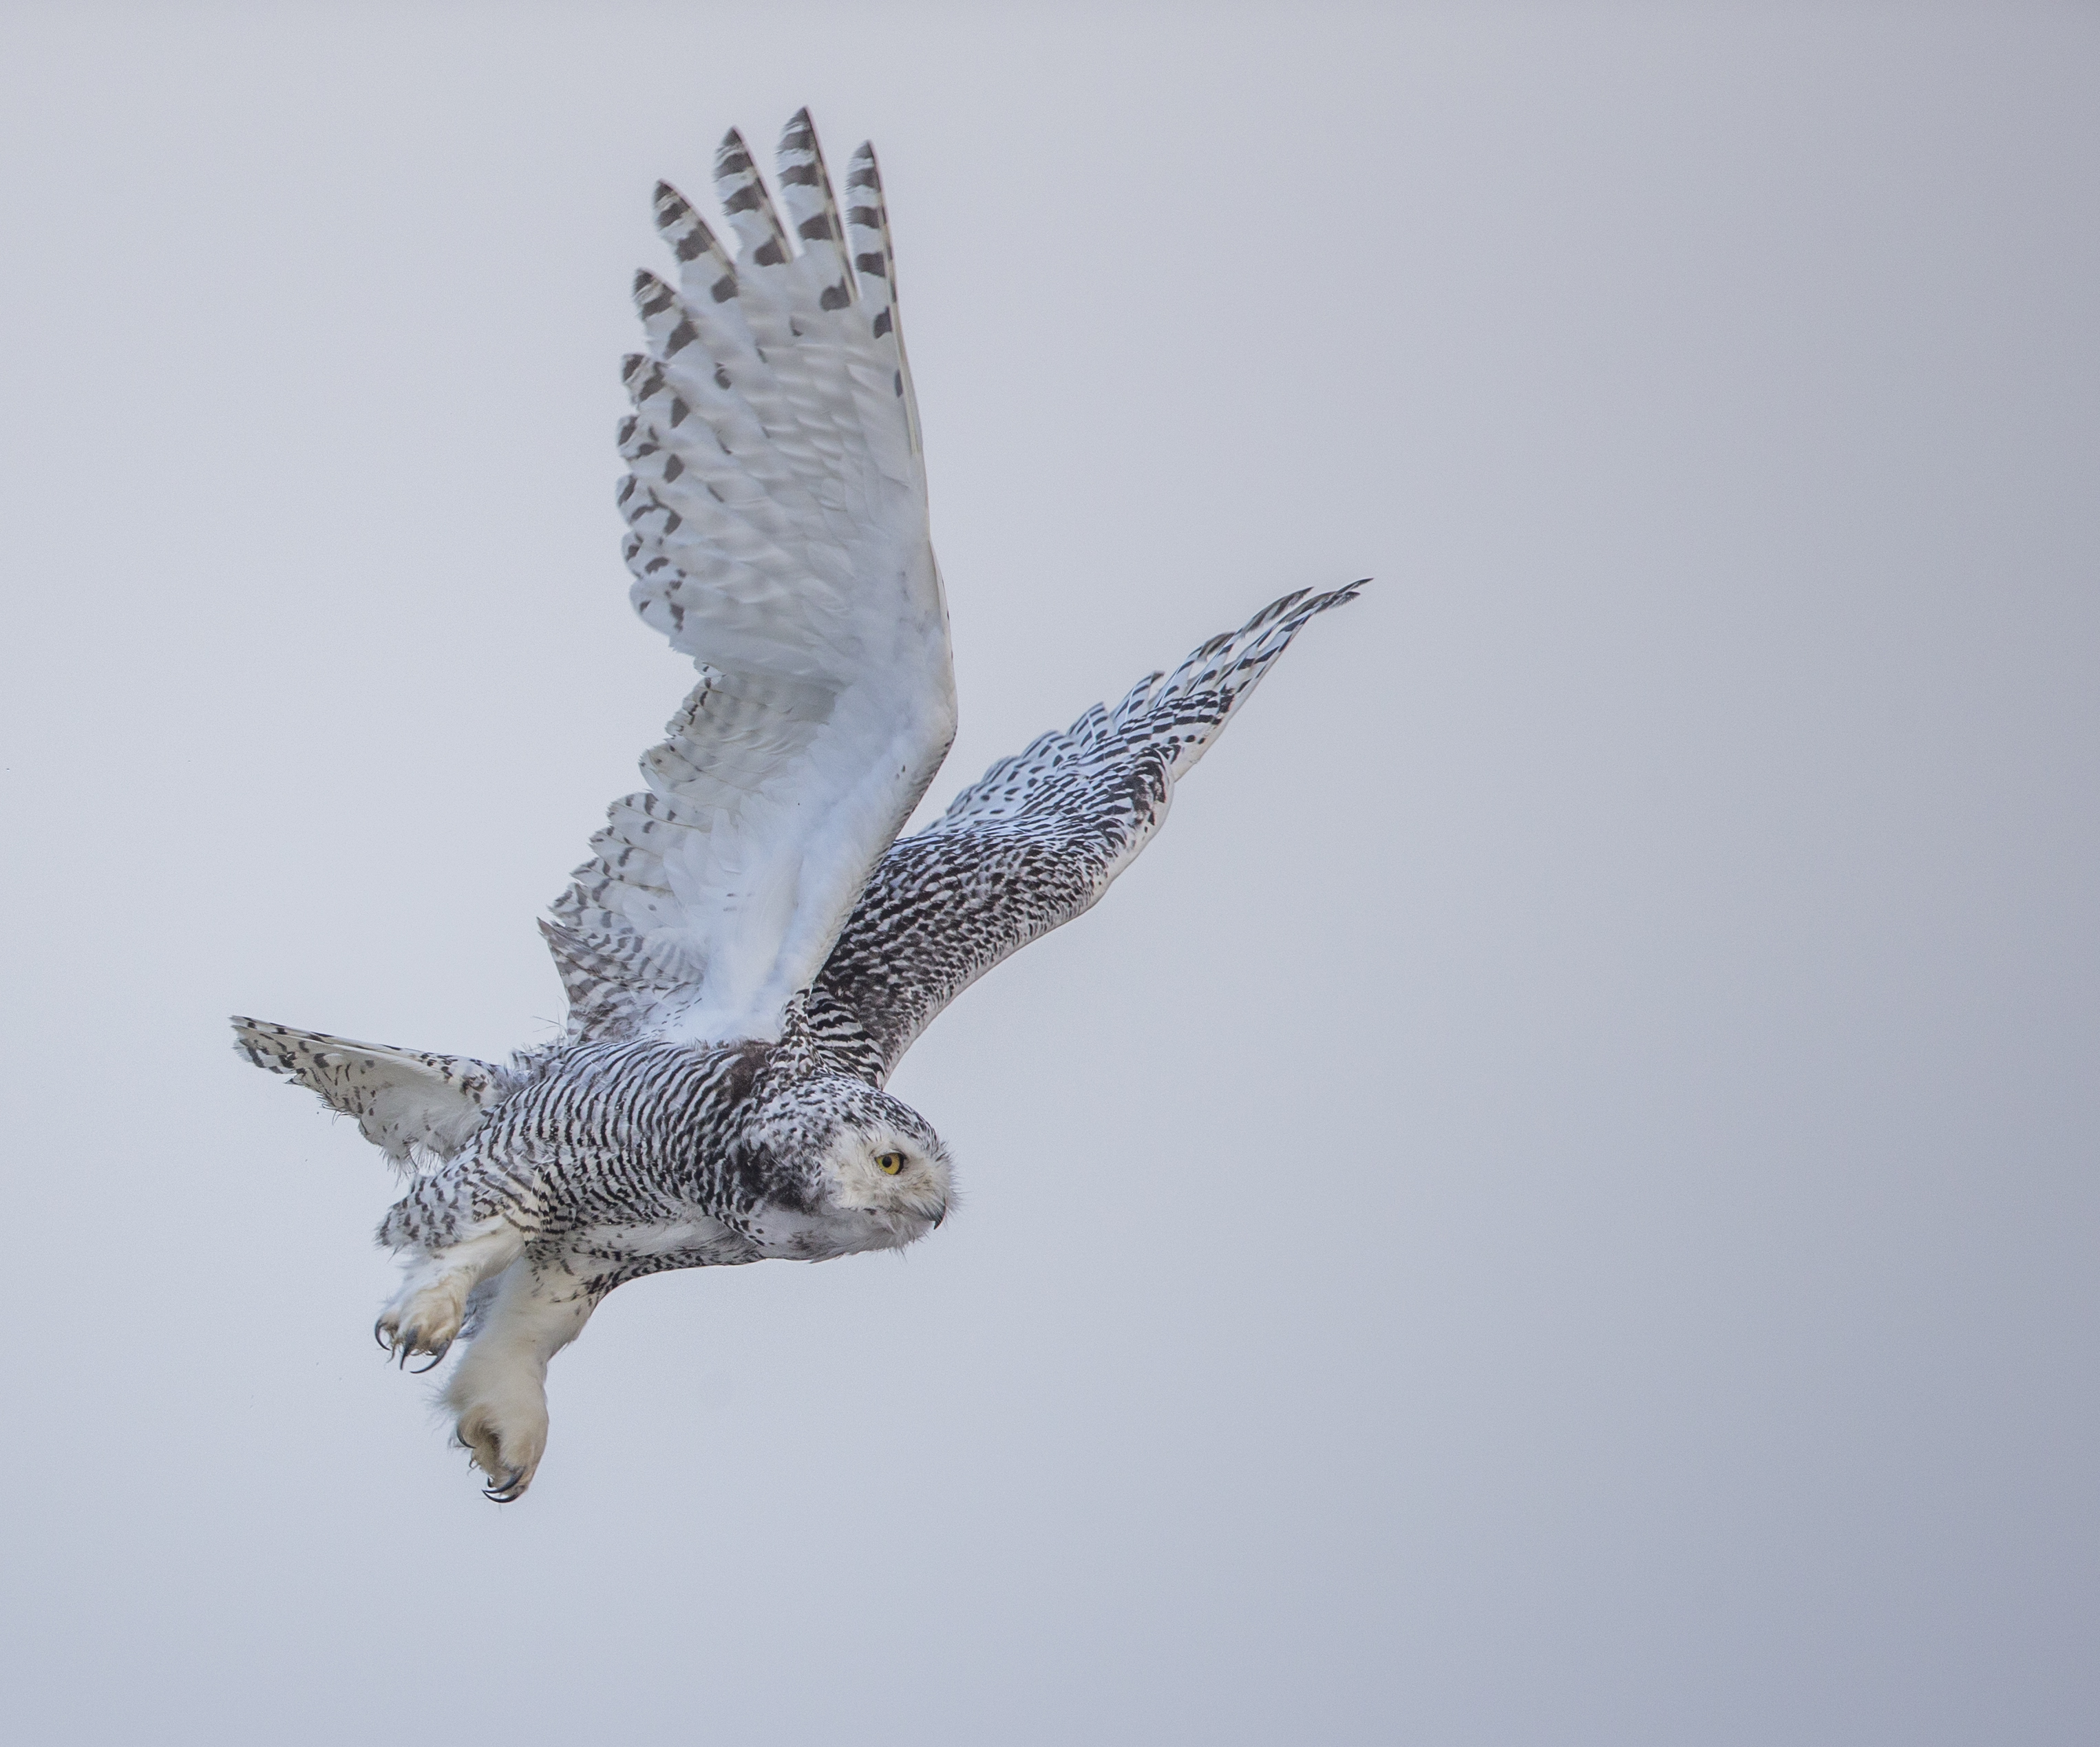 A snowy owl flies. 2016 Mountaineers Books, Braided River Imprint (Paul Bannick) ONE TIME RIGHTS